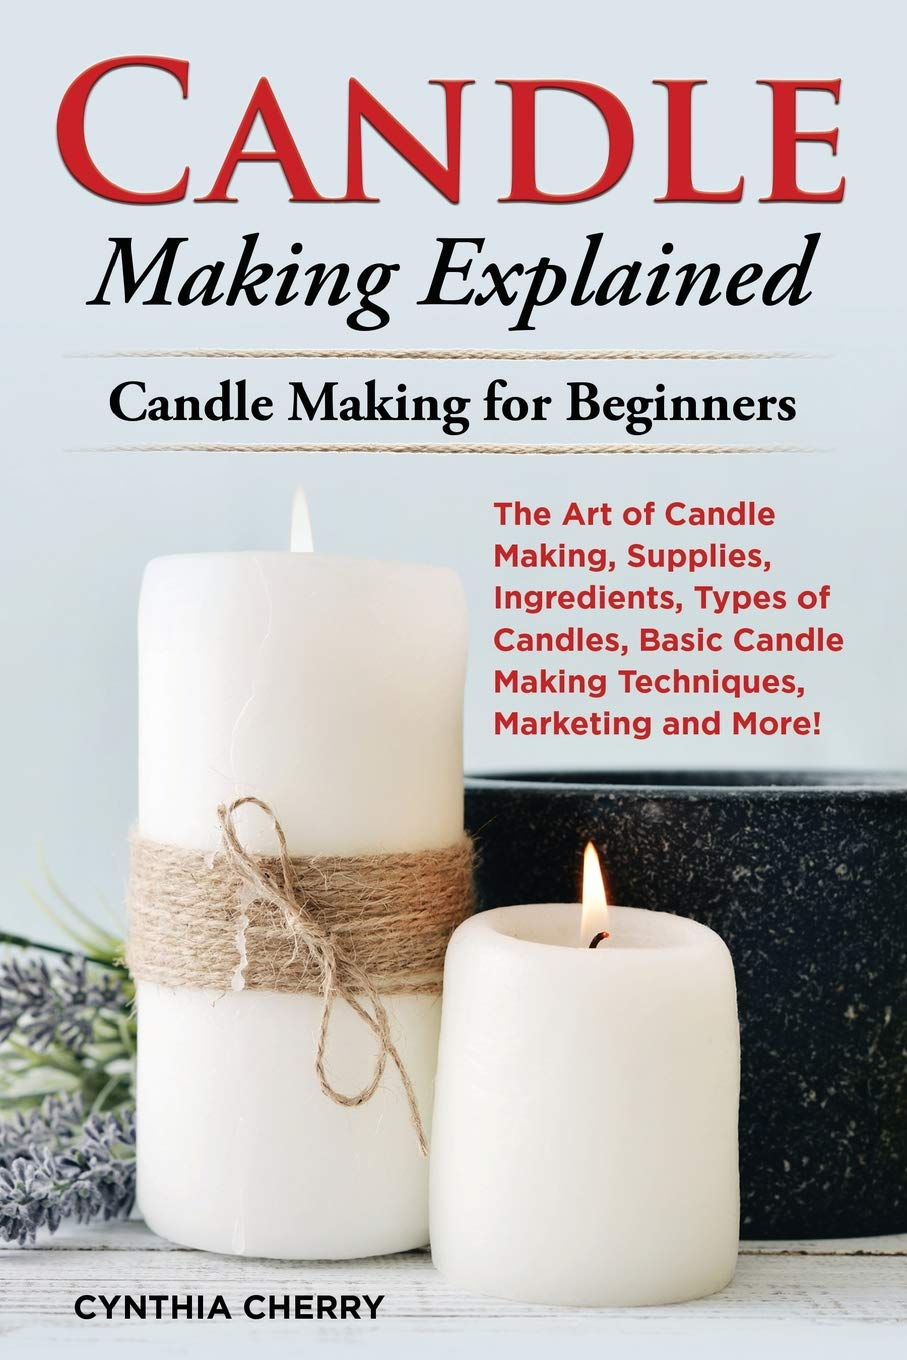 Candle Making Explained: The Art of Candle Making, Supplies, Ingredients, Types of Candles, Basic Candle Making Techniques, Marketing and More! Candle Making for Beginners pdf